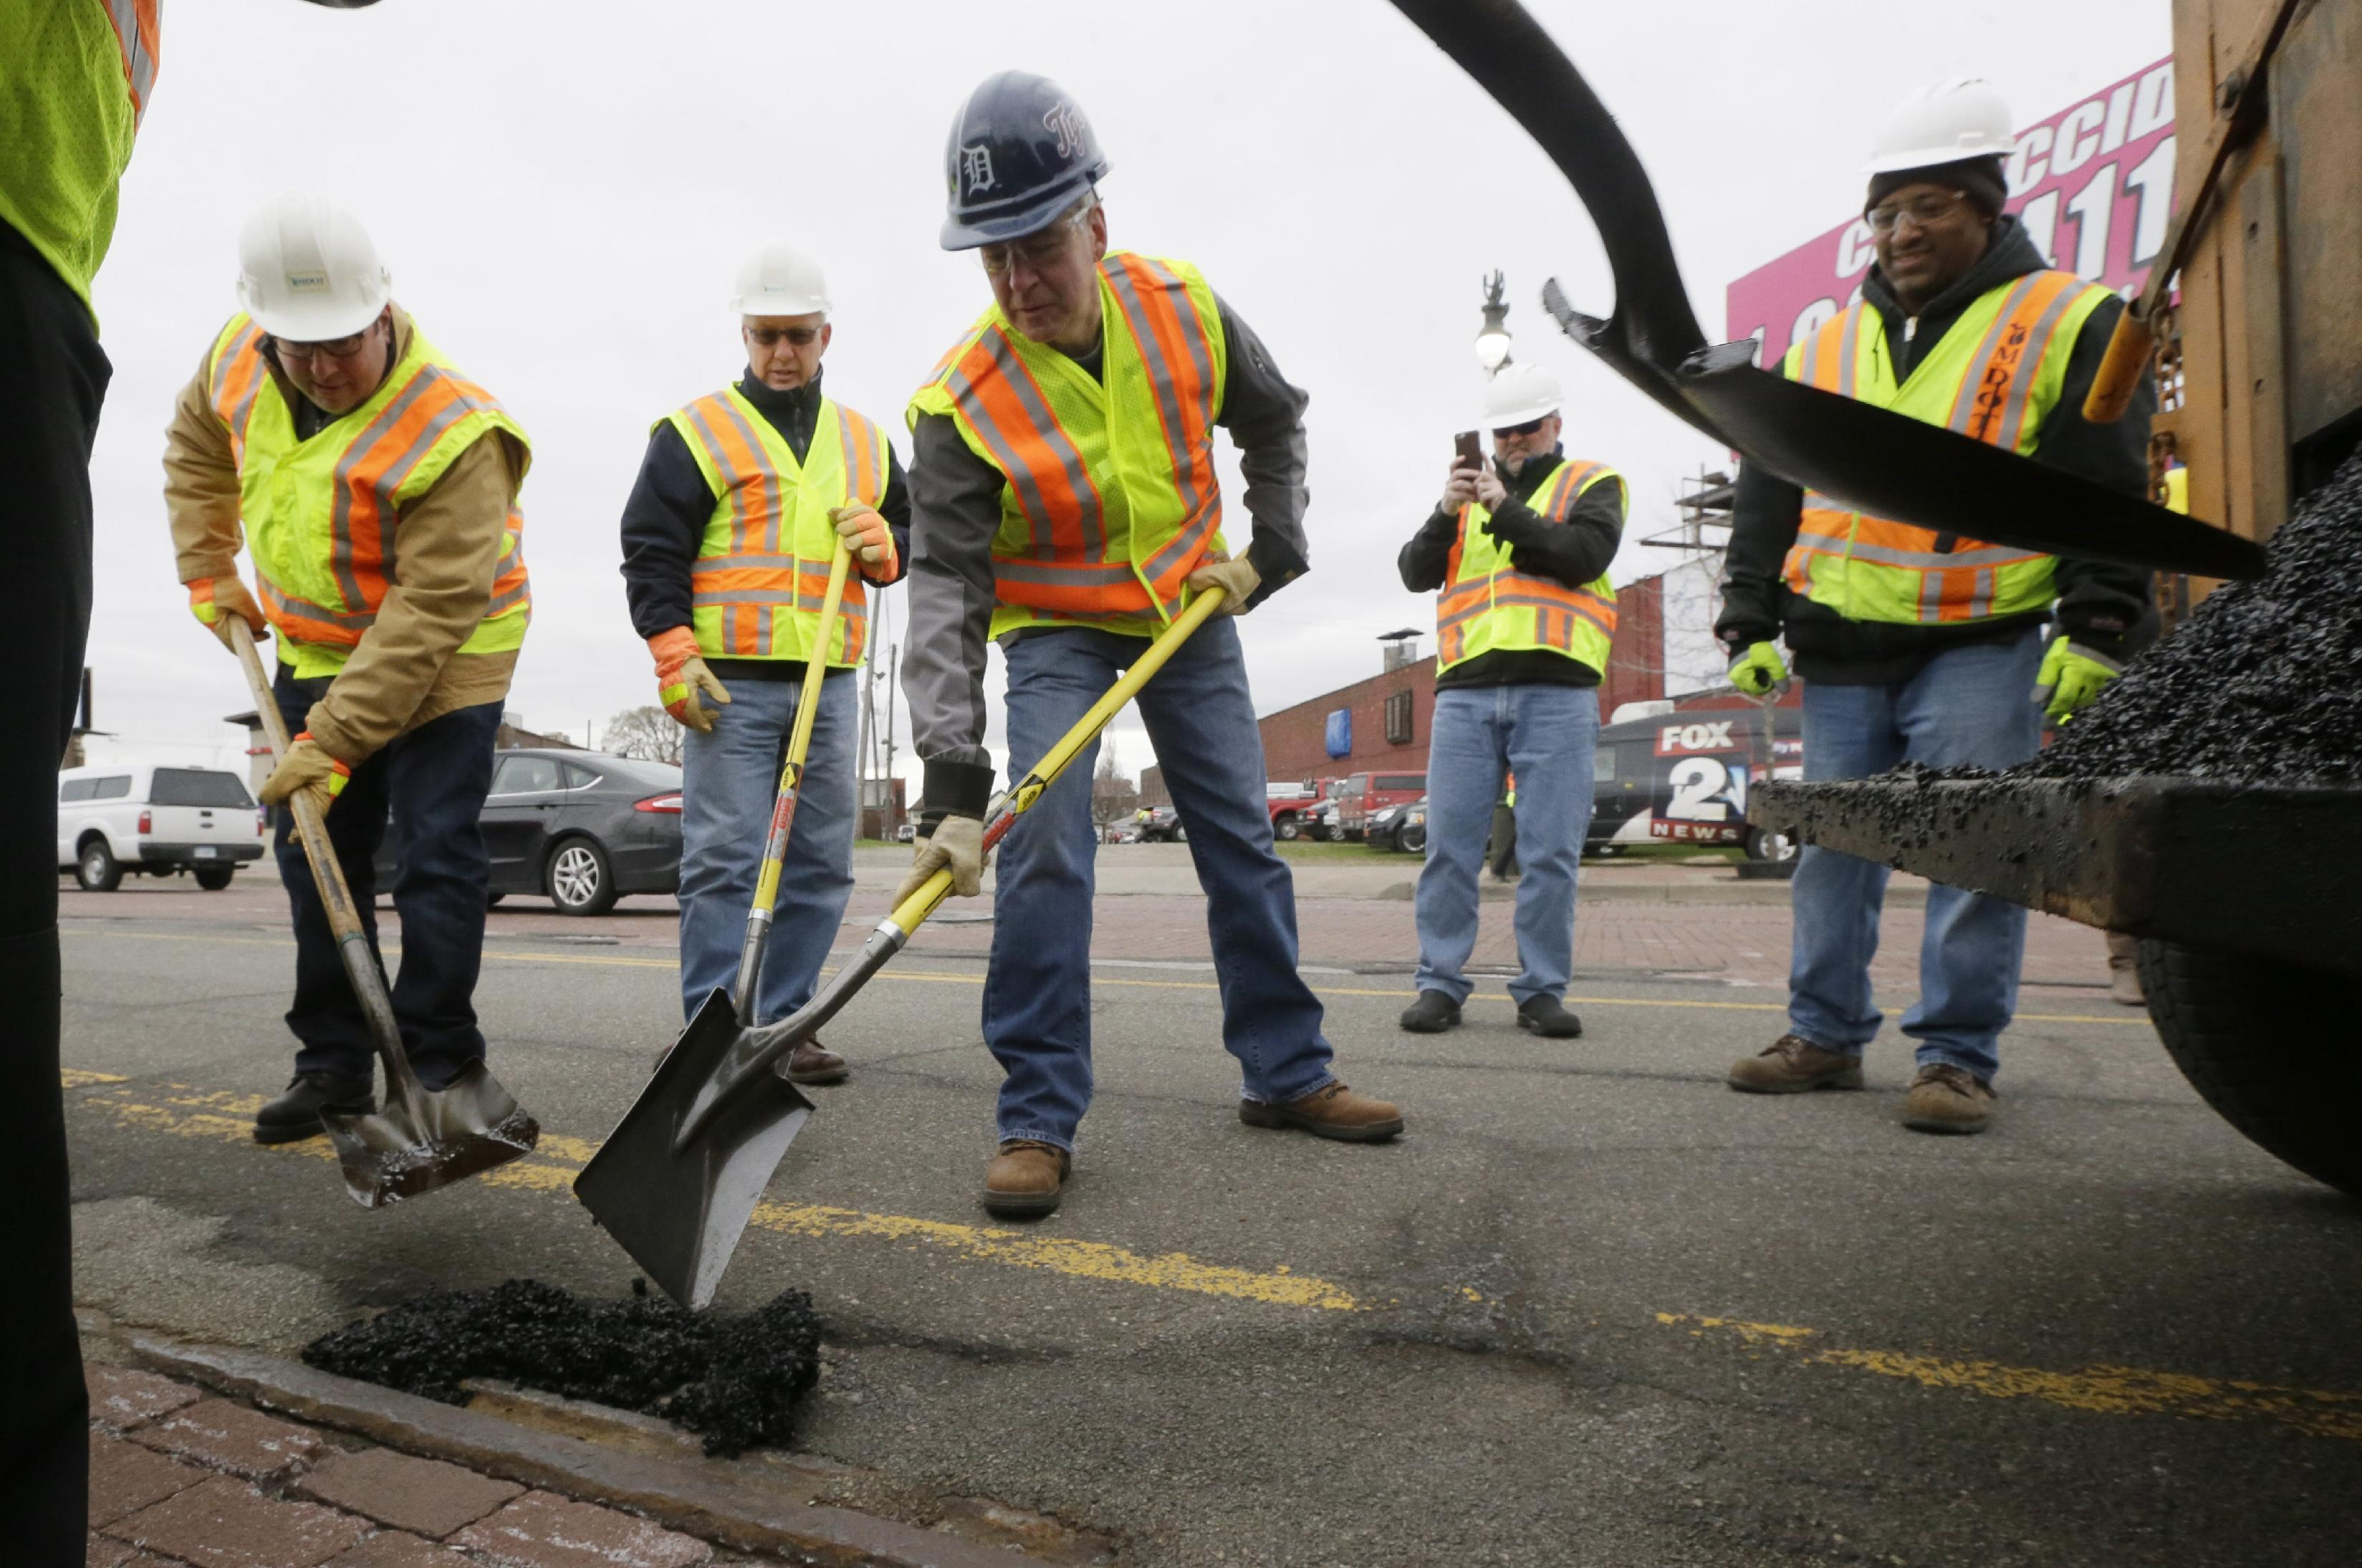 Michigan vote tests pothole angst vs. will to raise taxes